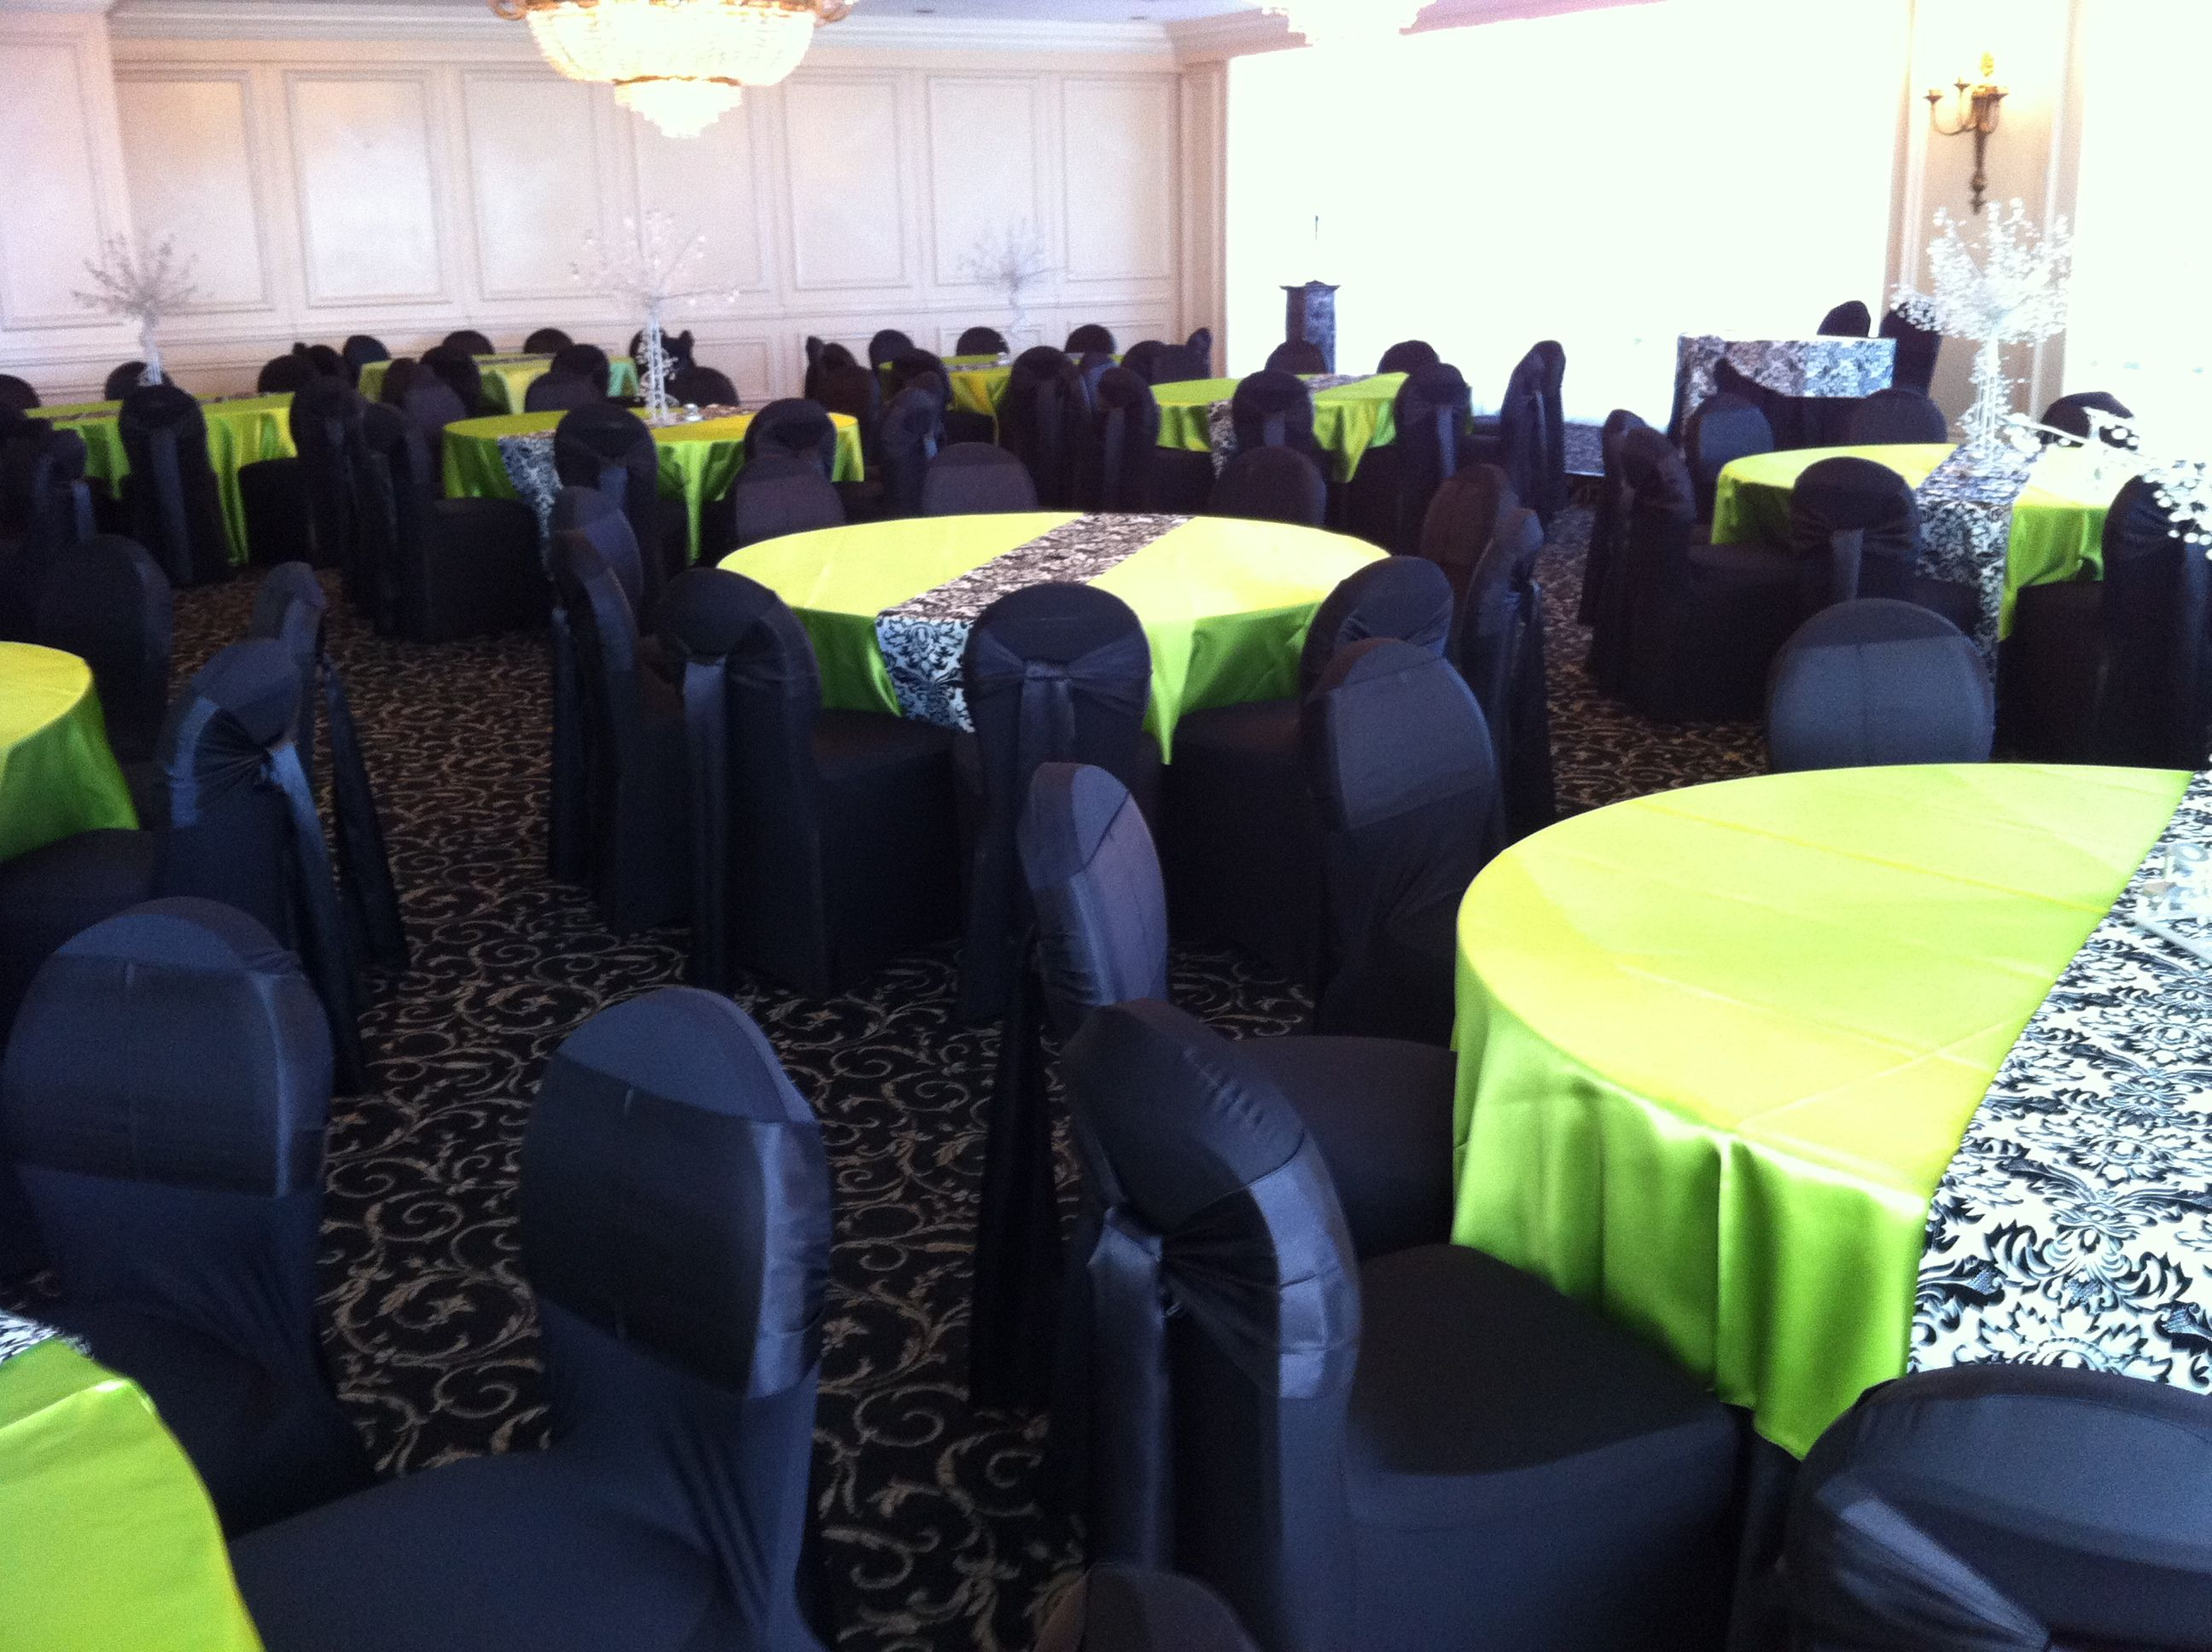 Swell Black On Black With Lime Green And Damask Table Runner Pabps2019 Chair Design Images Pabps2019Com